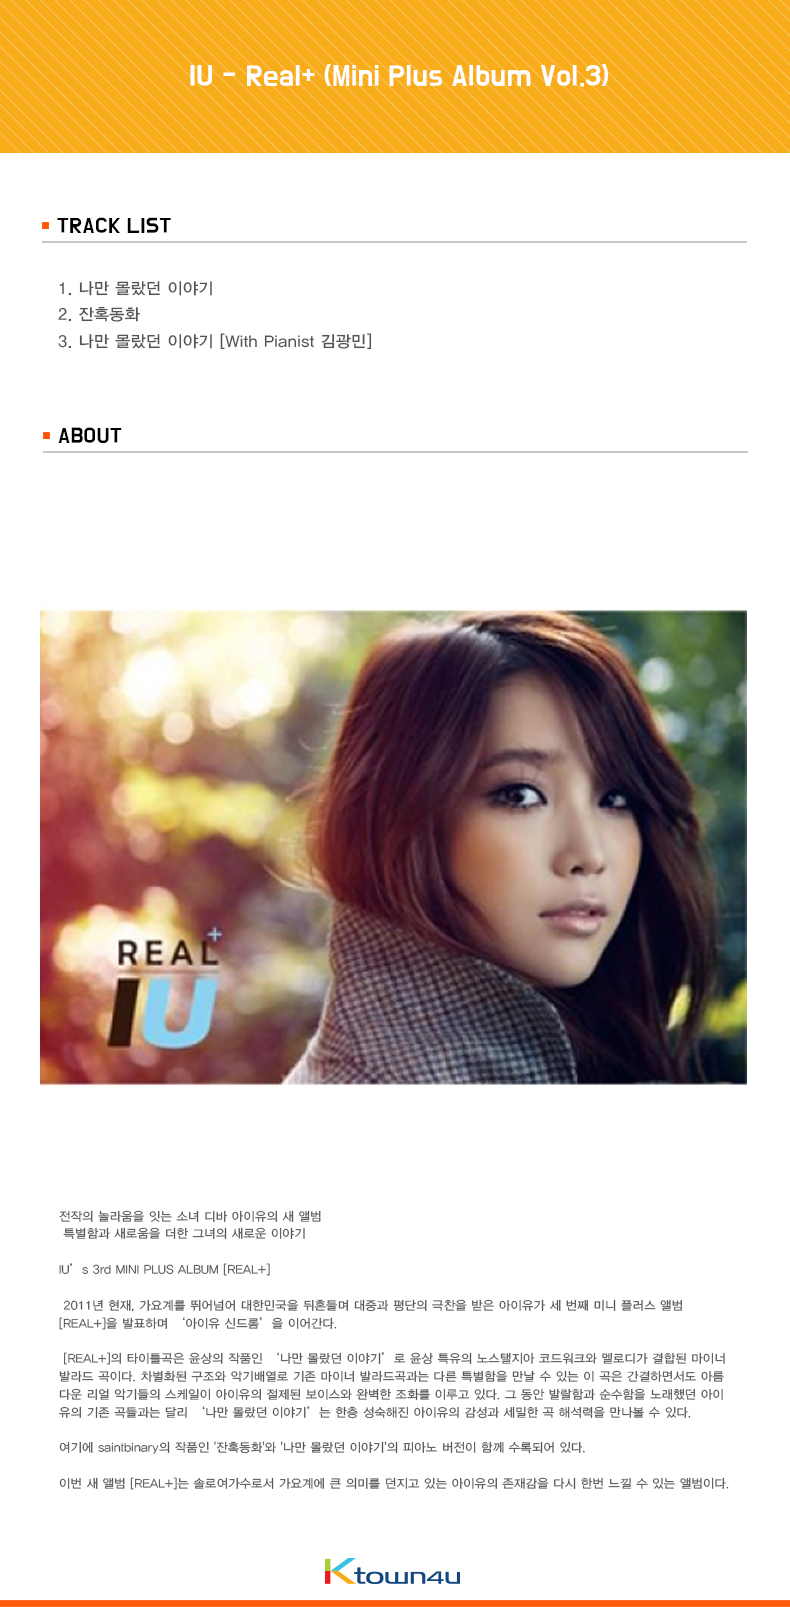 アイユ(IU) : Real+ (Mini Plus Album Vol.3)